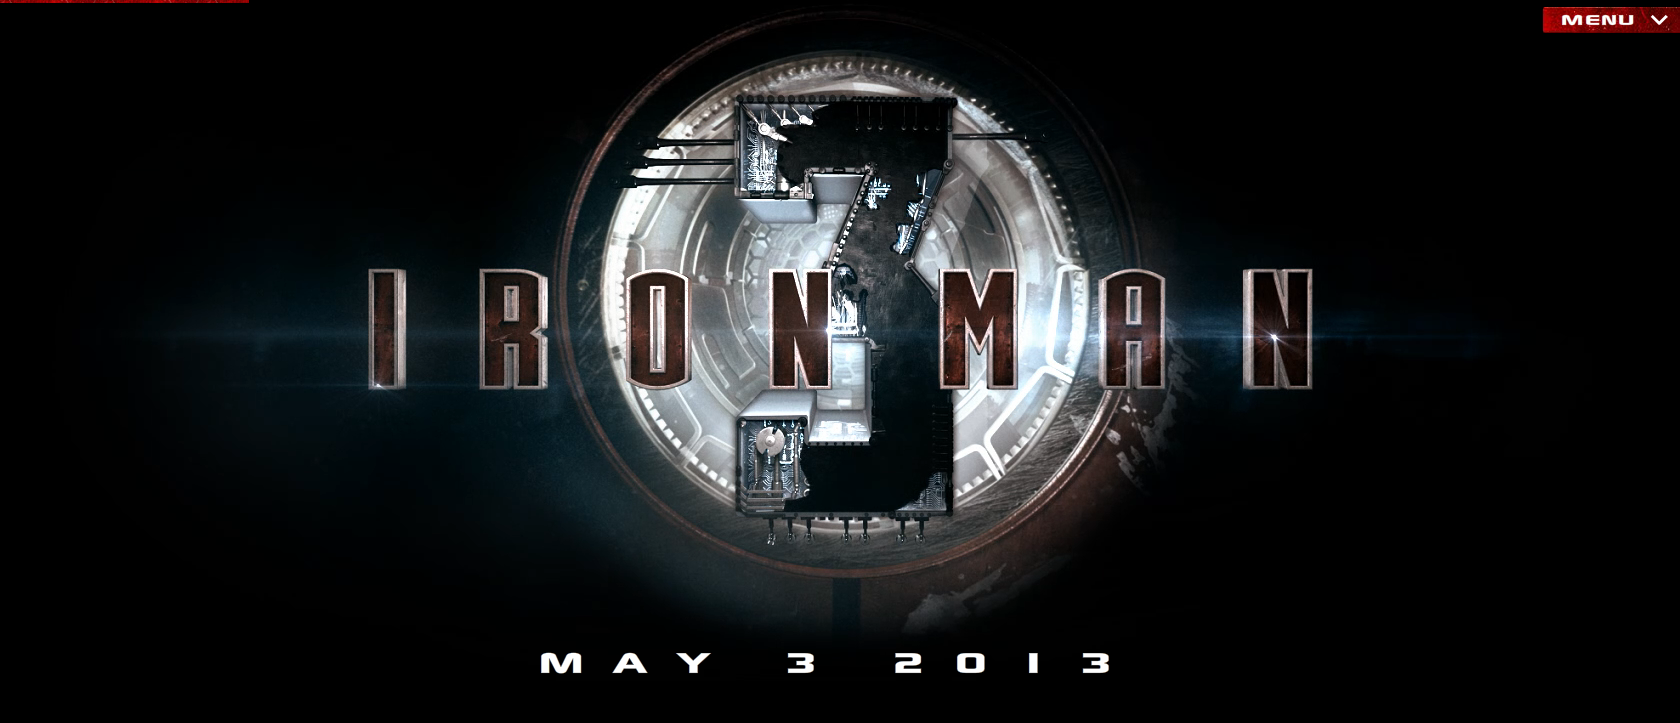 iron man 3 official banner Tony Stark Hurtles Towards Earth in Latest IRON MAN 3 Poster